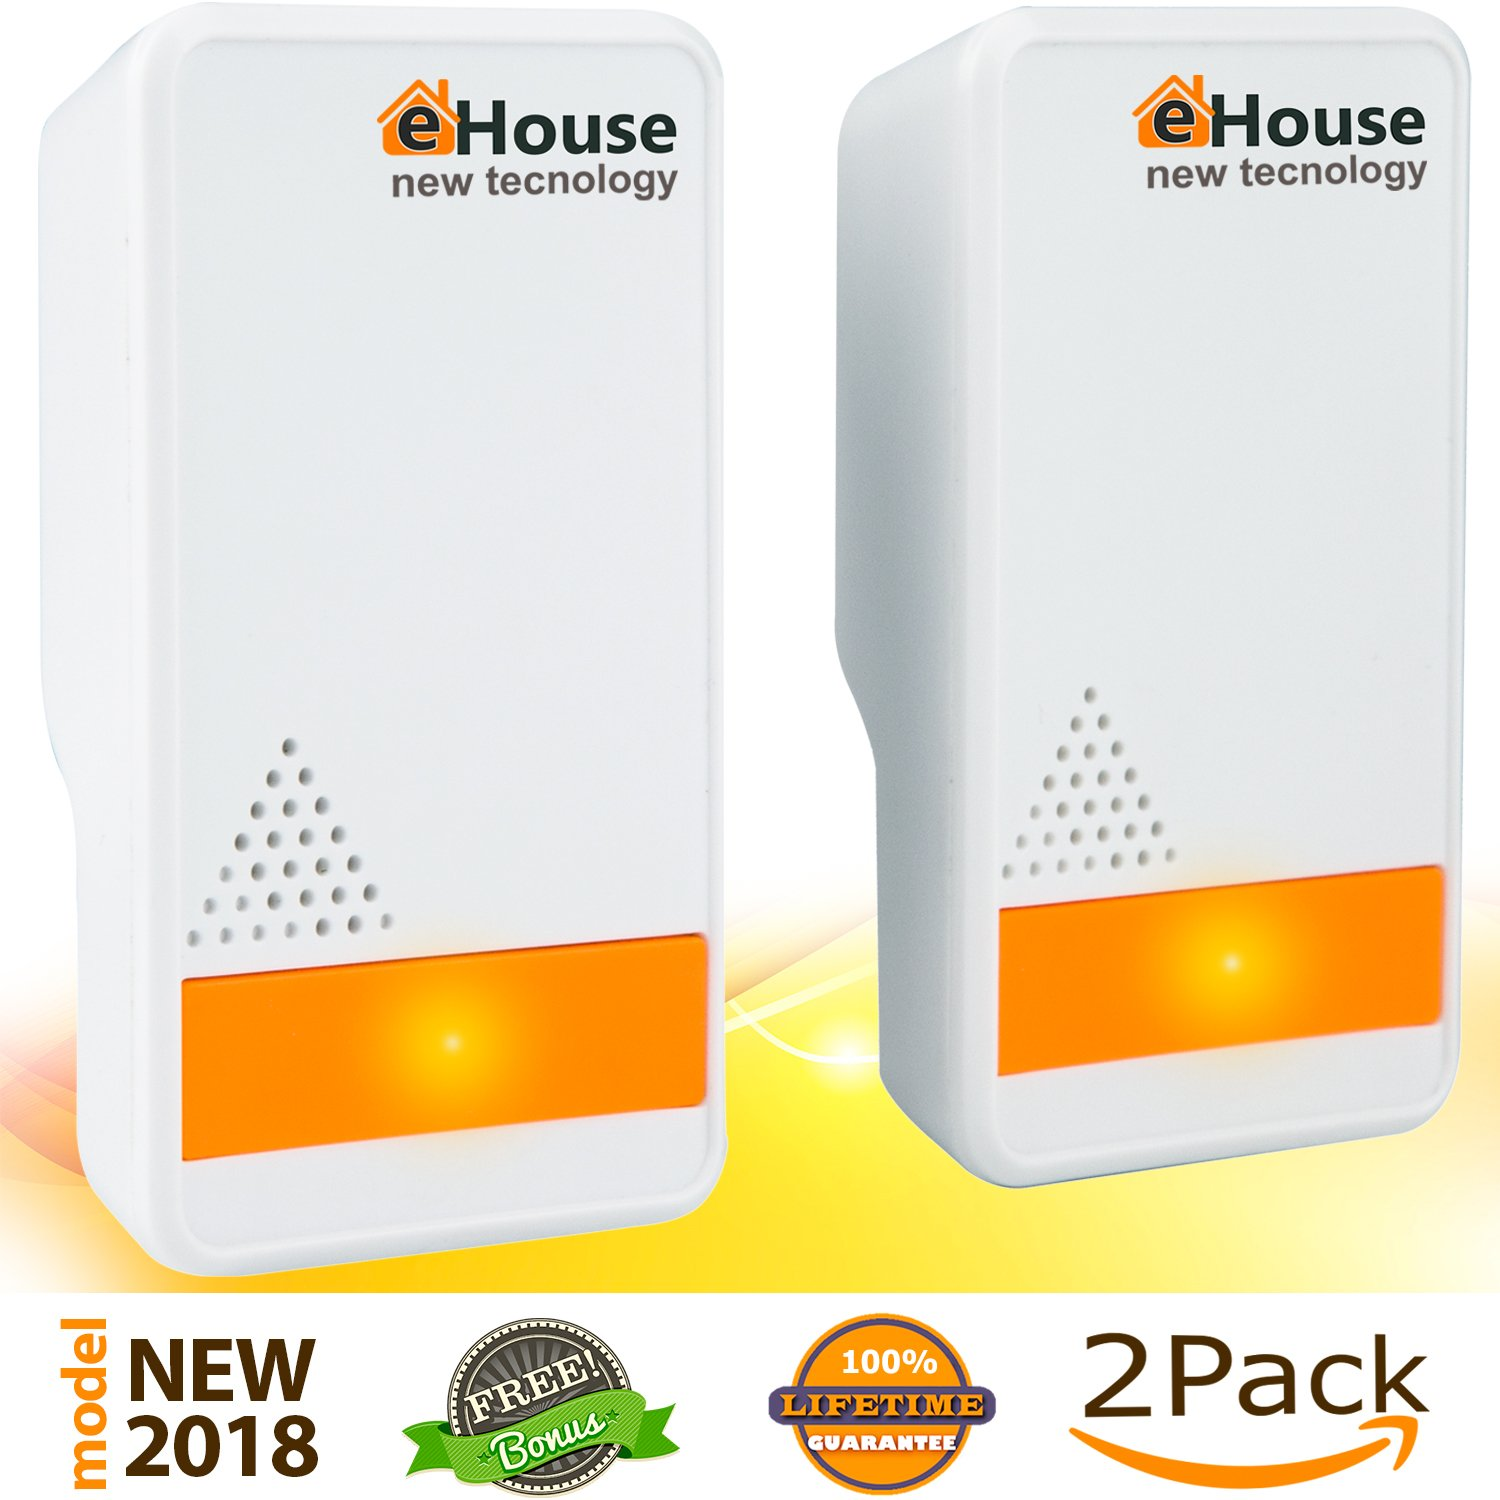 Ultrasonic Pest Repeller - (2 Pack) Electronic Plug in Best Repellent - Pest Control - Get Rid Of - Rodents Squirrels Mice Rats Insects - Roaches Spiders Fleas Bed Bugs Flies Ants Mosquitos Fruit Fly! eHouse